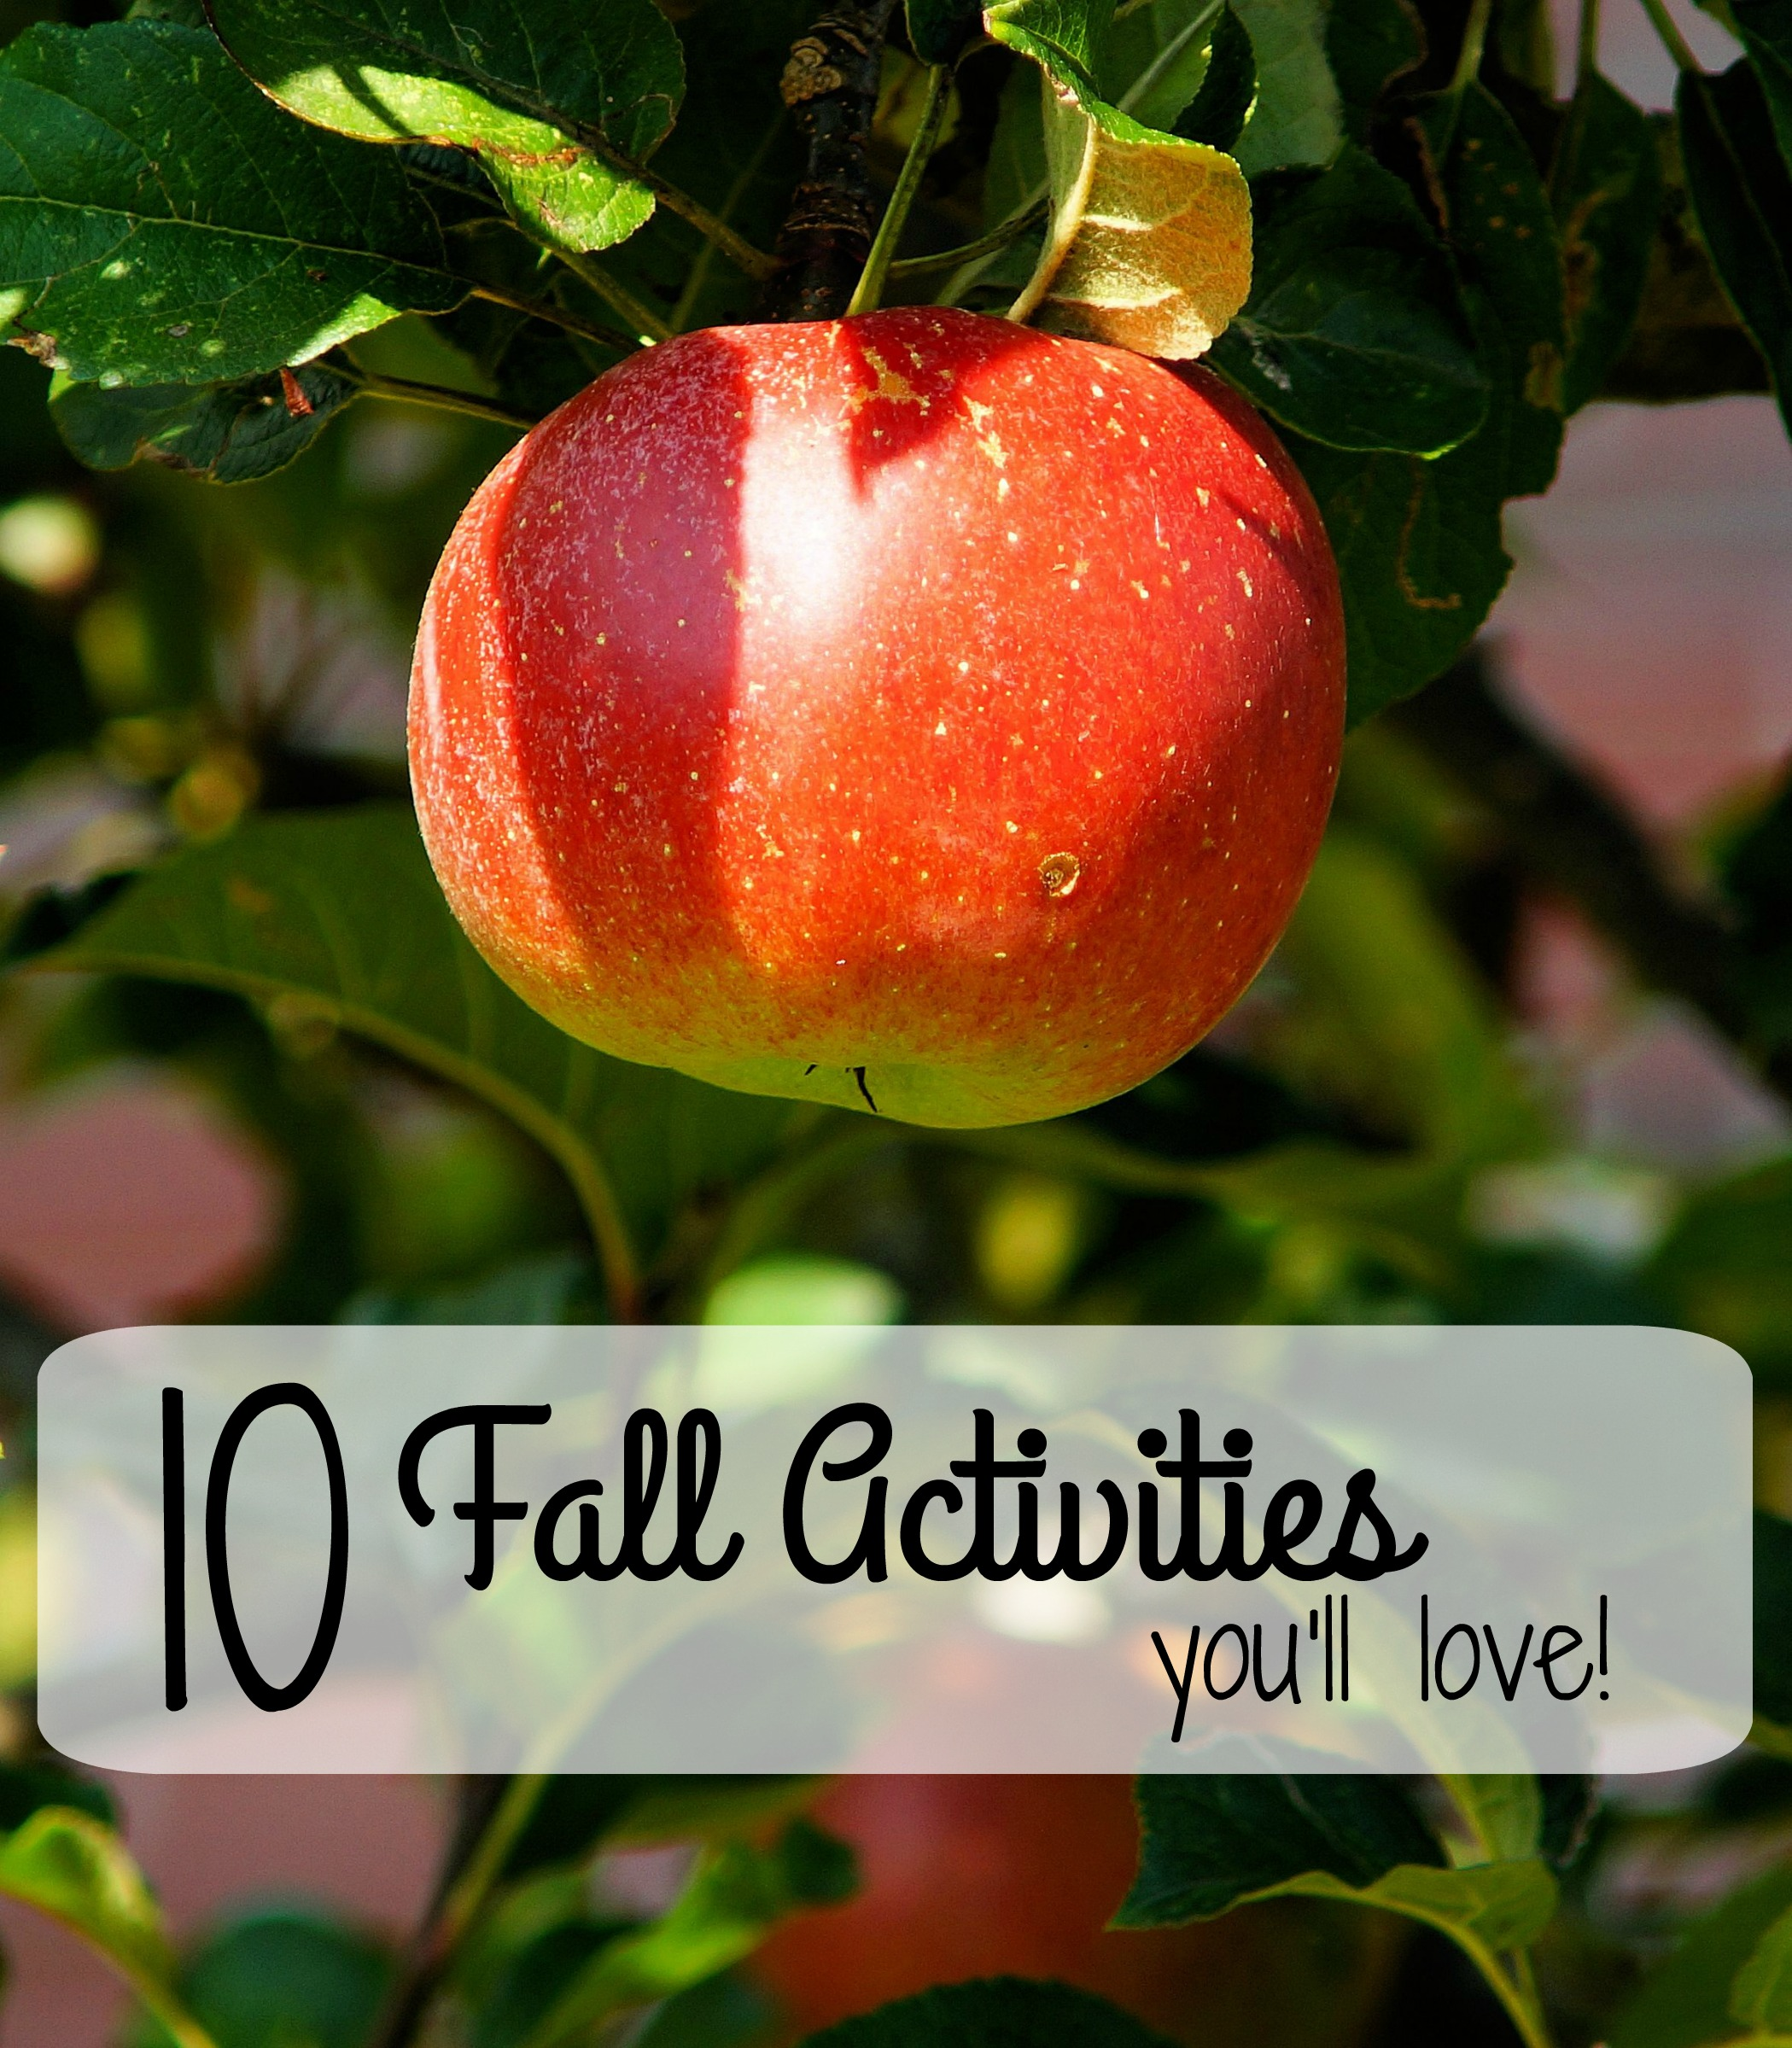 10 Fall Activities You'll Love